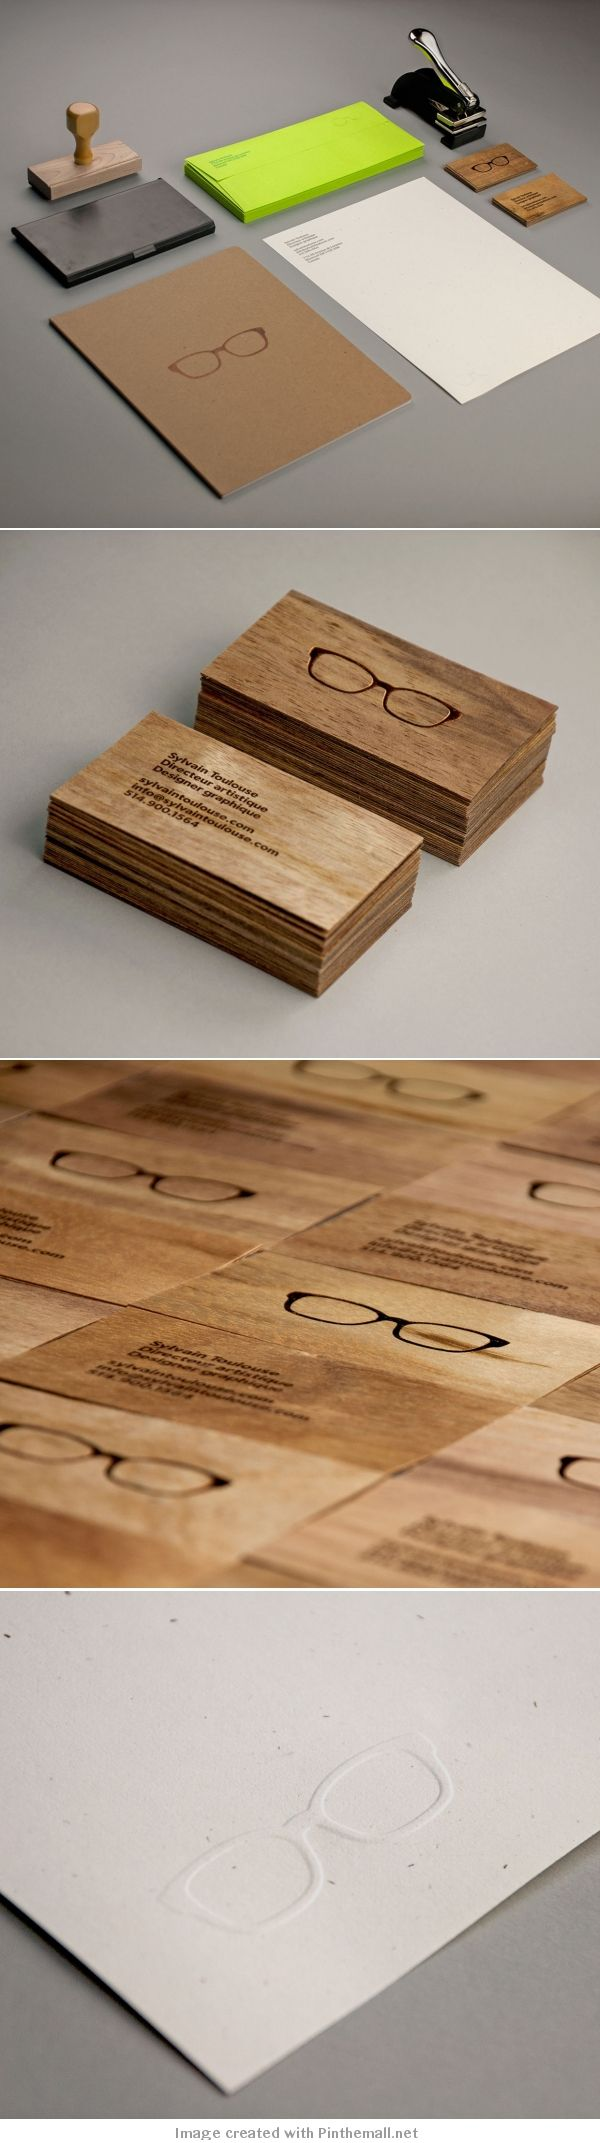 Self promotion idea.  Notice on the bottom slide, the letterpress impression of the glasses? You could get a die made of your logo or you could use your company seal - to put an imprint on everything you send out.  Nice subtle way of branding.